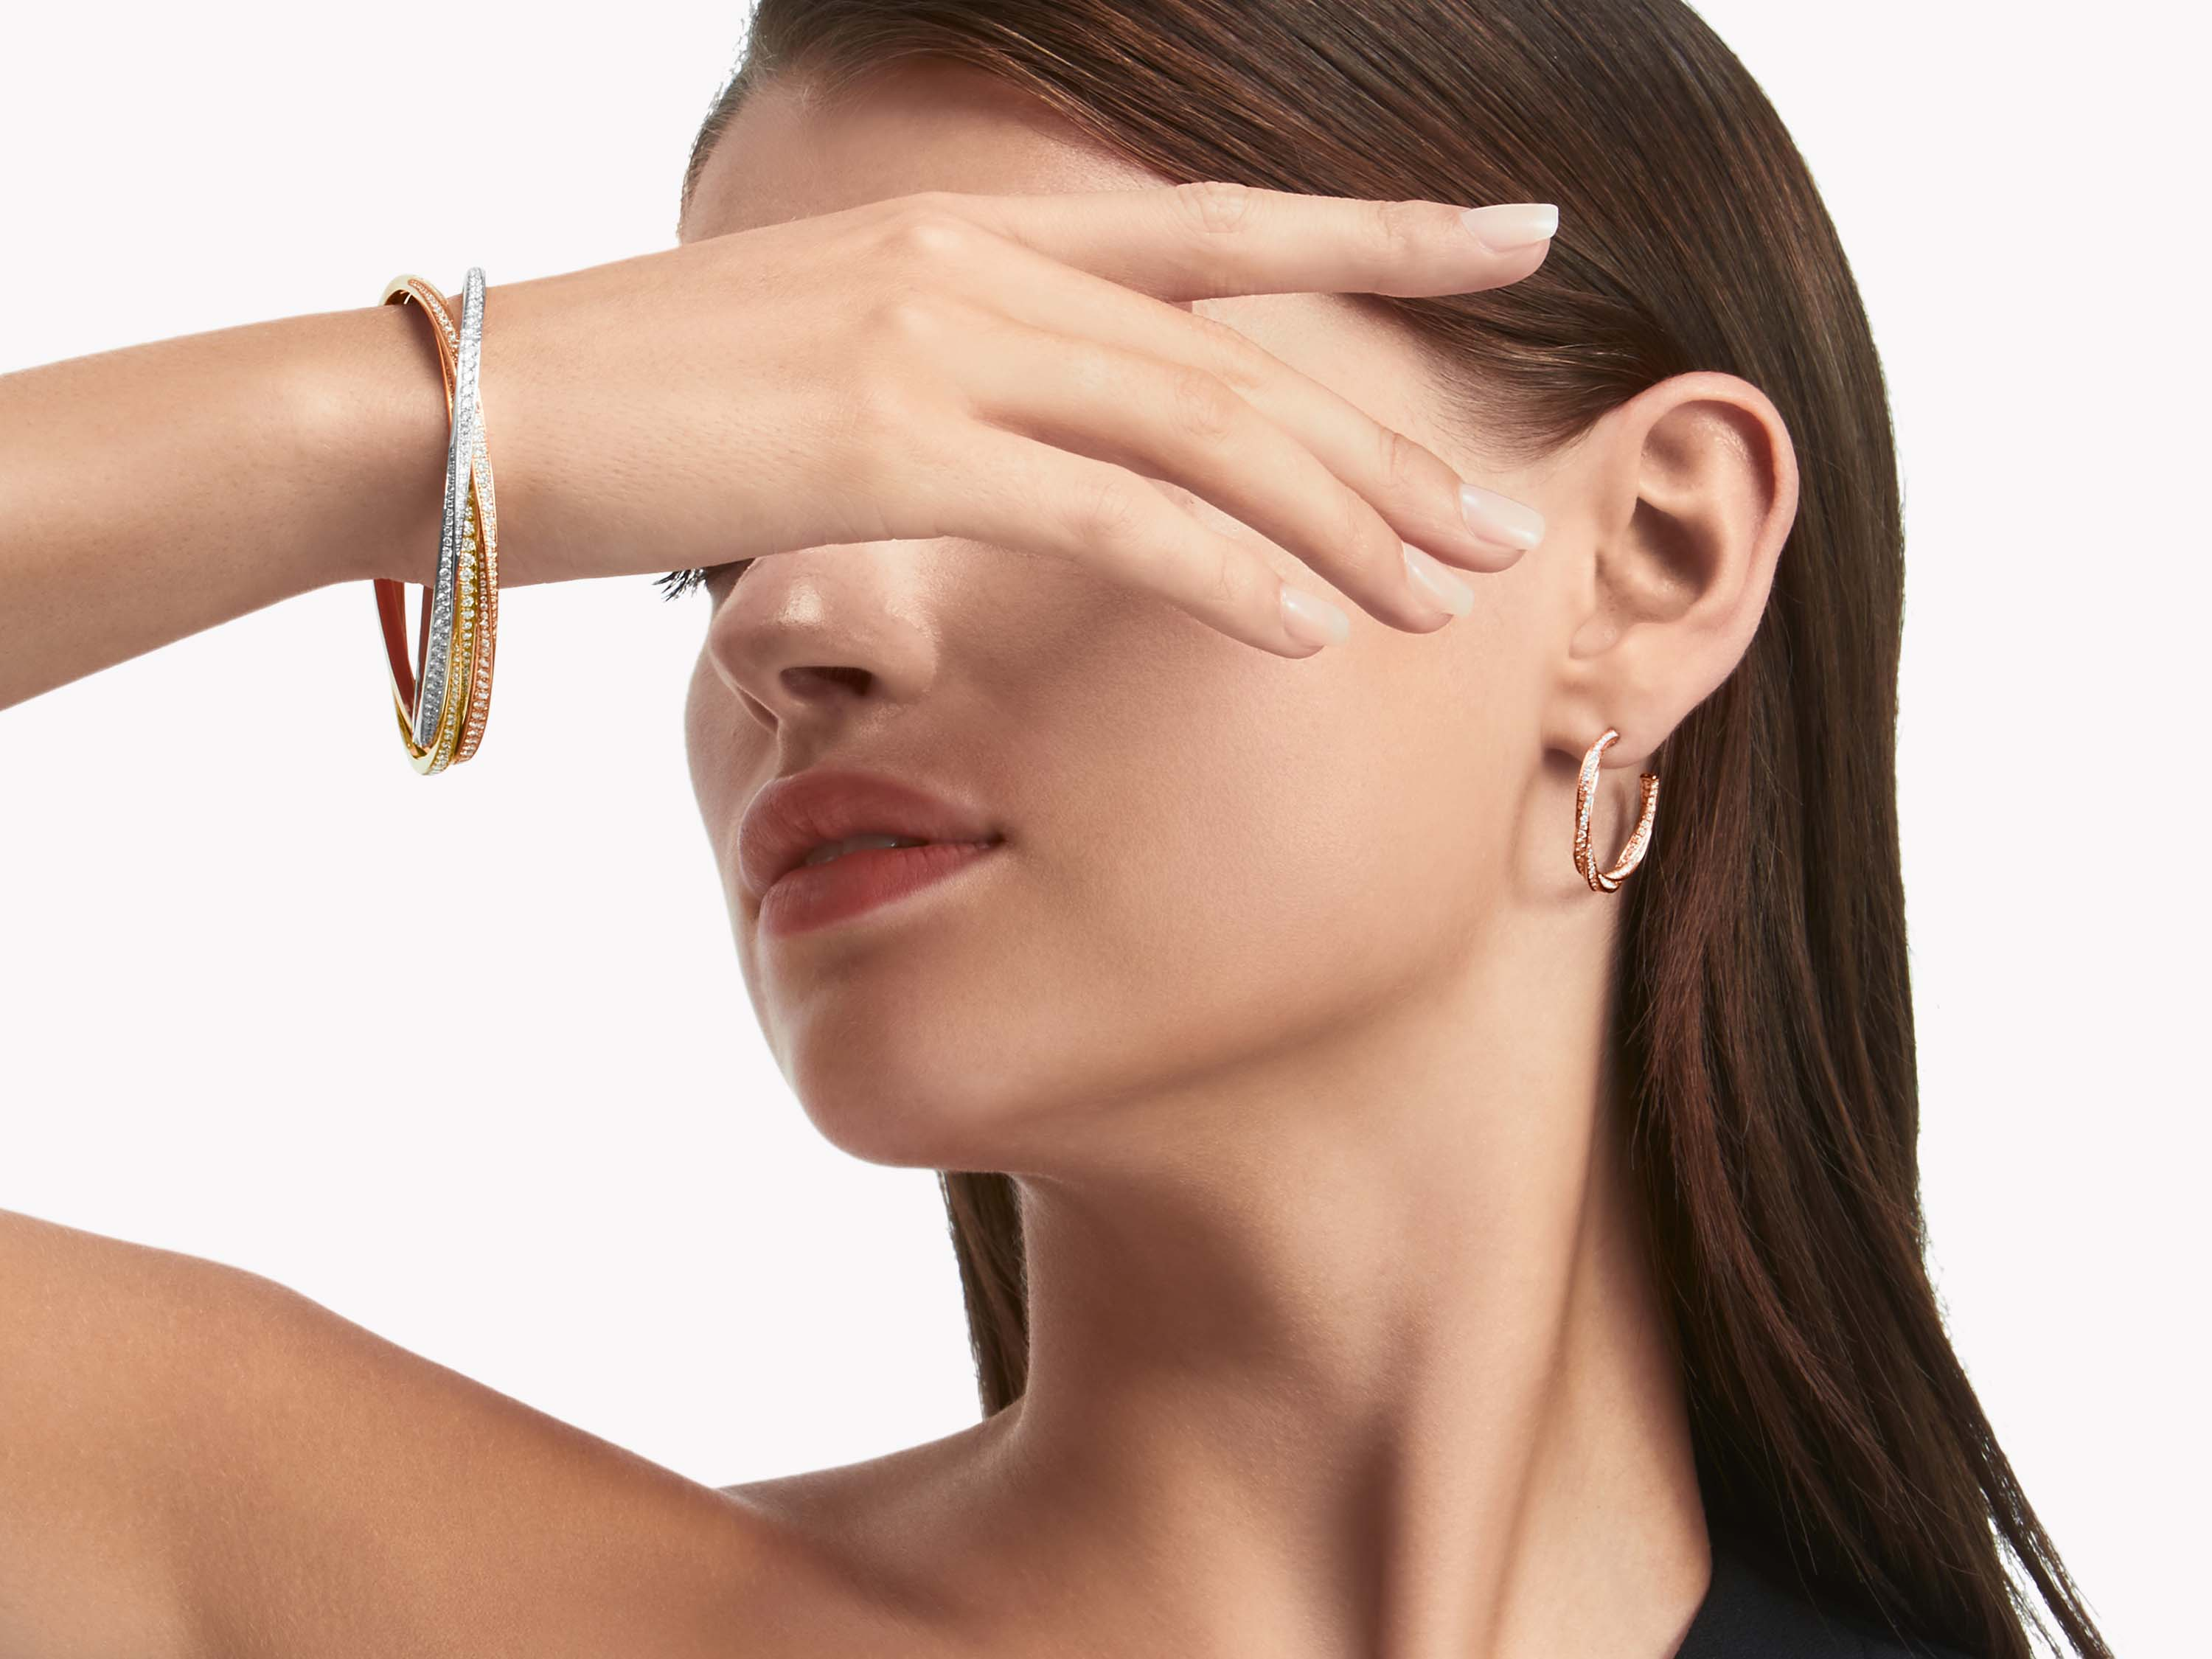 Model wearing Triple Spiral Pavé Diamond Bangle WHITE, YELLOW AND ROSE GOLD and Graff Spiral Diamond Hoop Earrings ROSE GOLD